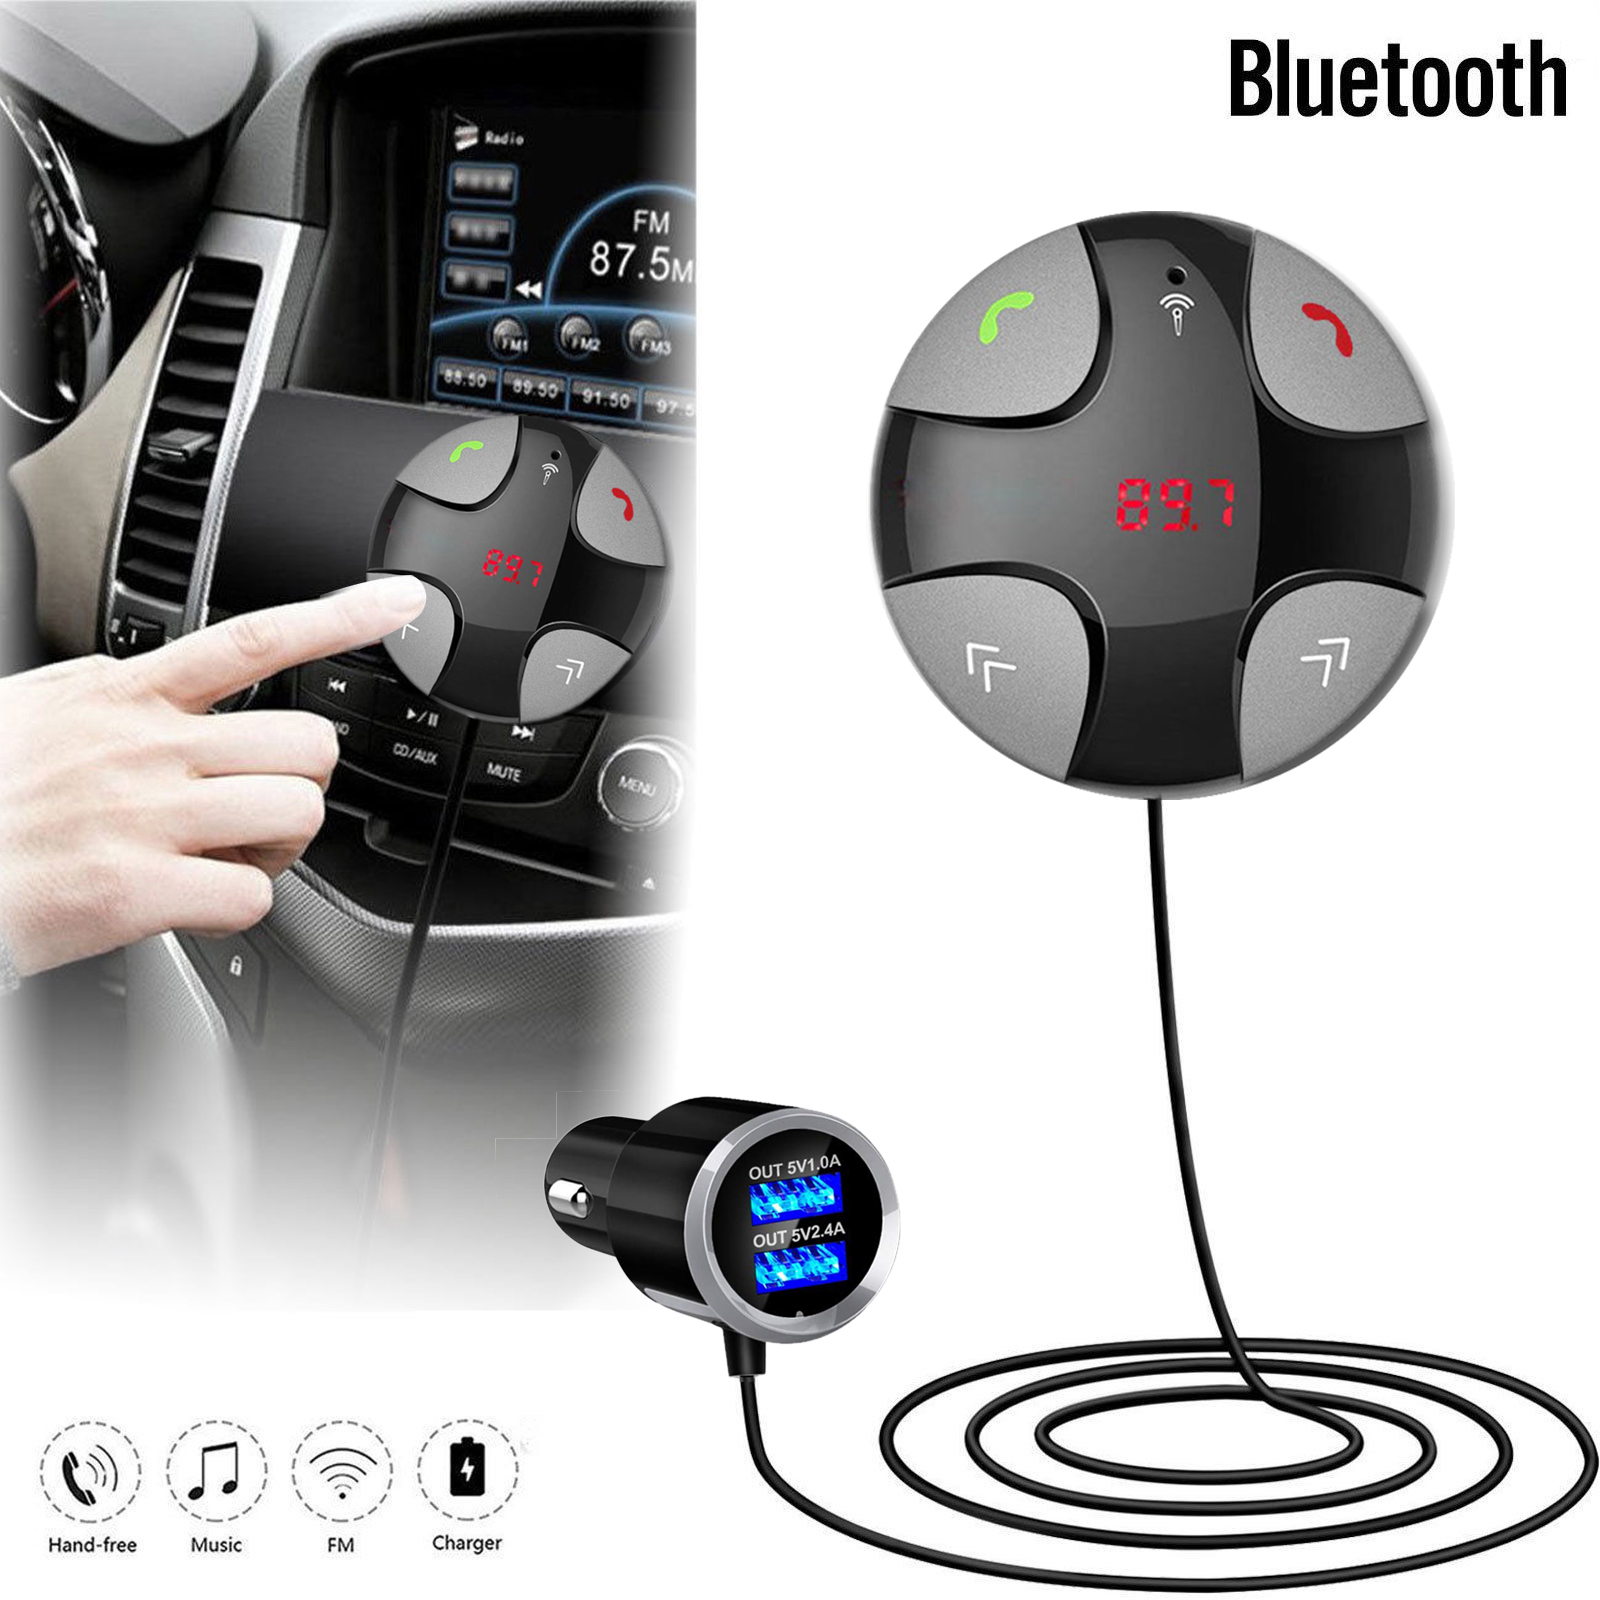 Handsfree Wireless Bluetooth 4.2 FM Transmitter Car Kit Mp3 Player with Dual USB Charger